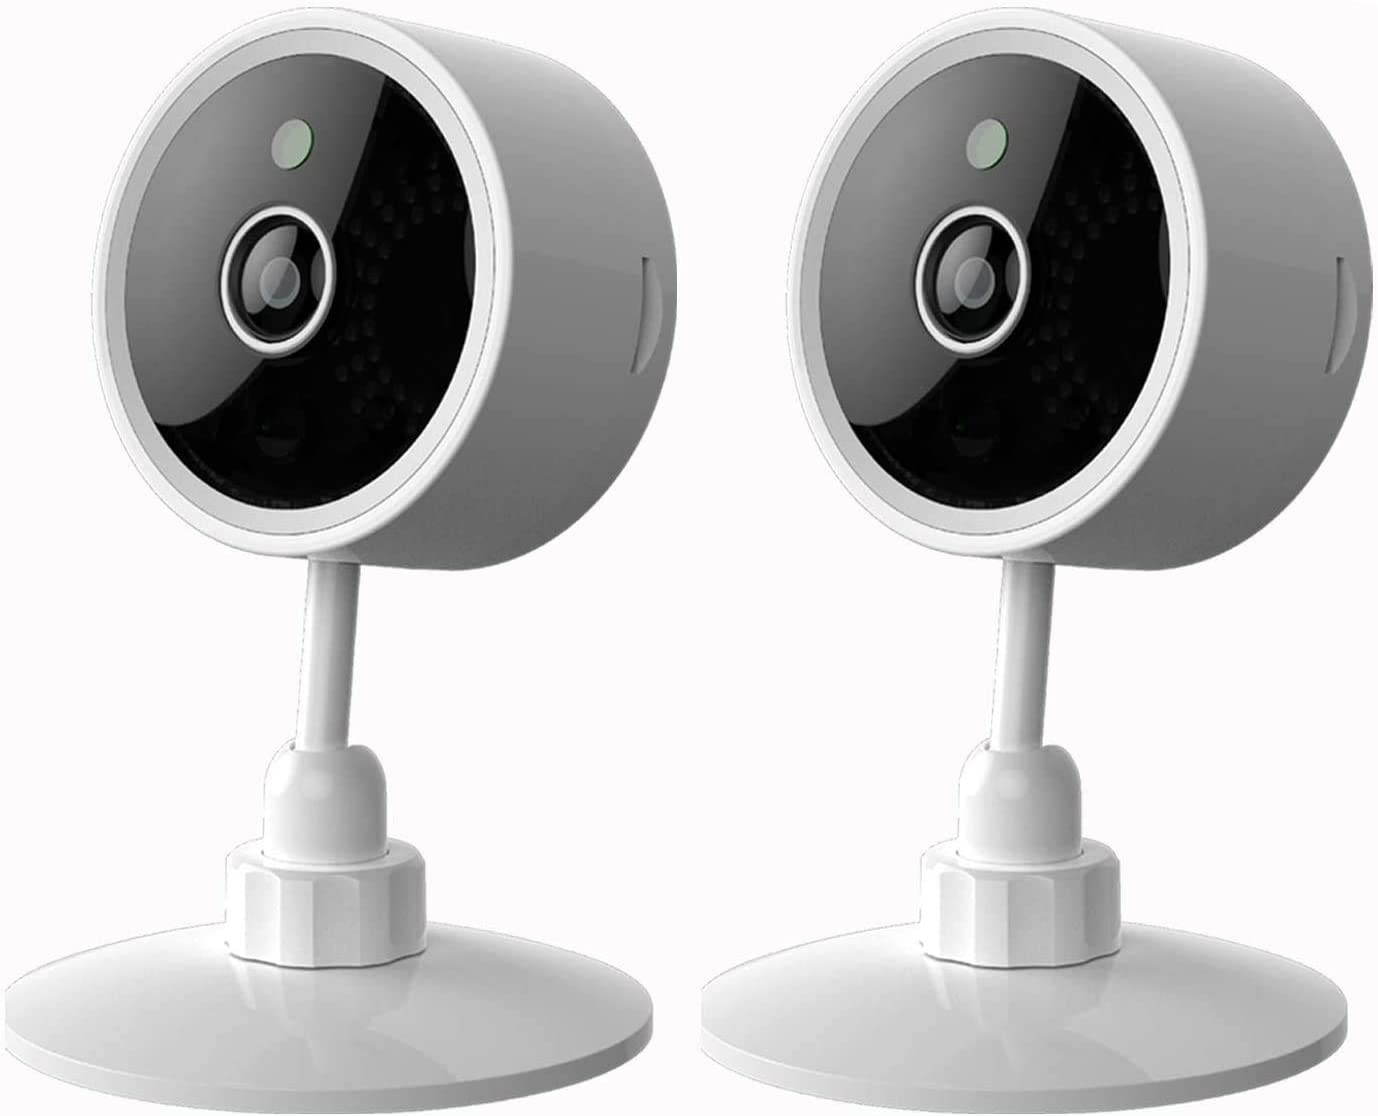 Premier Accessory Group Smart Security Camera Alexa Google Home Certified Compatible Smarthome Wireless Pet Nanny Cam WiFi Safety Set, 2, 4 Packs, Smartphone App Enabled, White